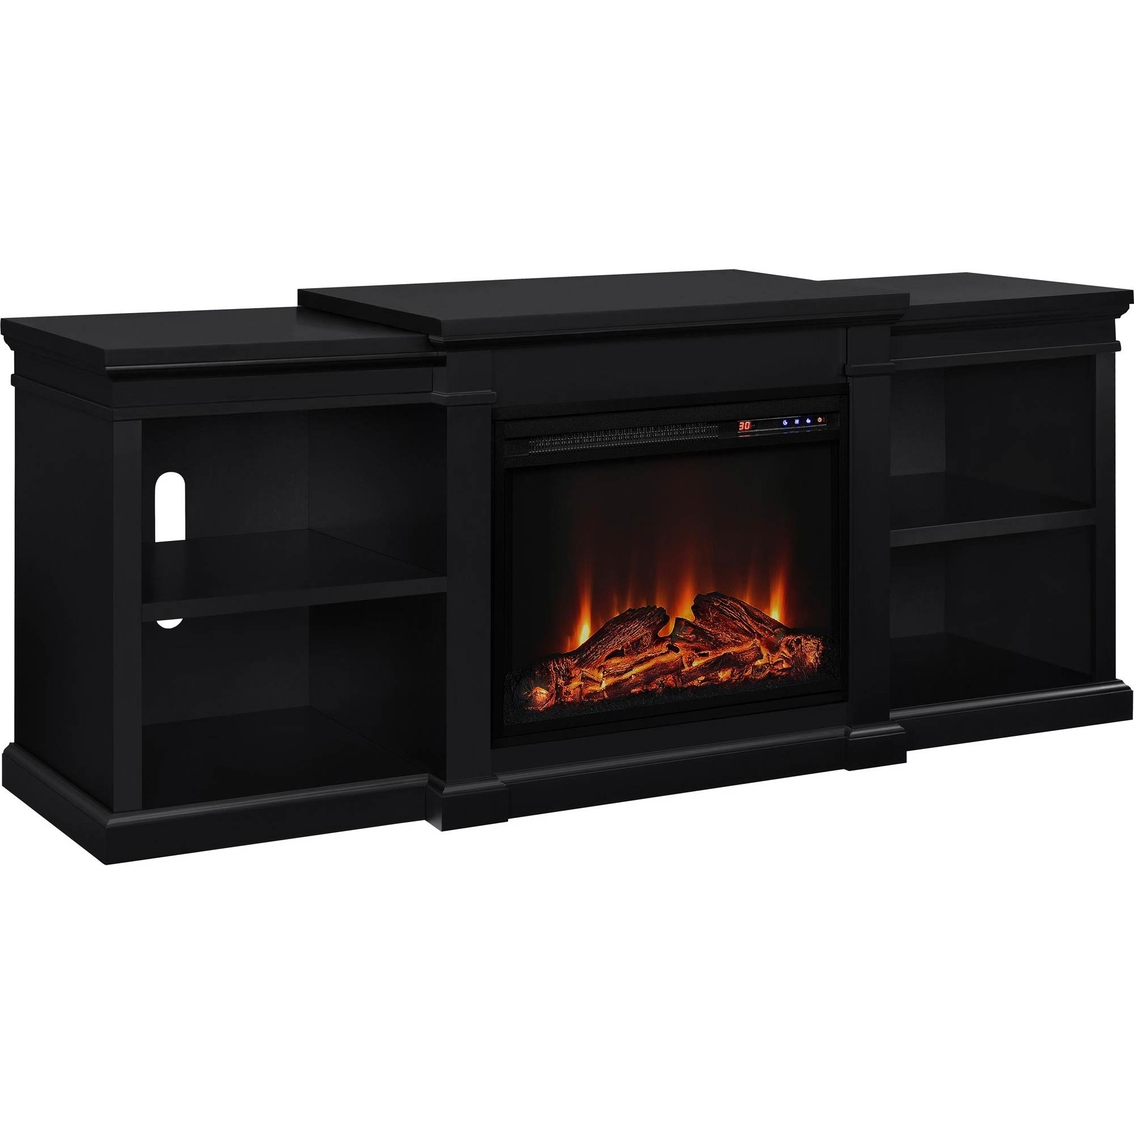 70 Best Online Furniture Stores: Altra Manchester Fireplace 70 In. Tv Stand With Side